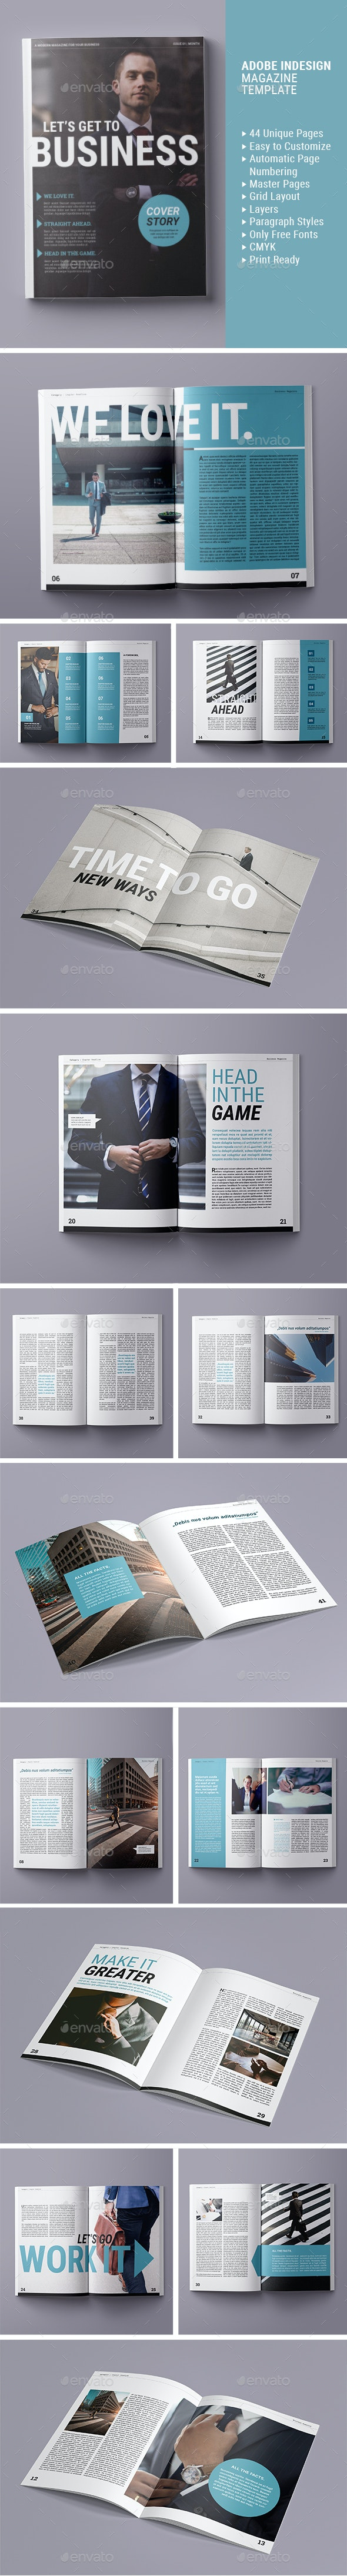 Magazine Template | Let's get to Business - Magazines Print Templates